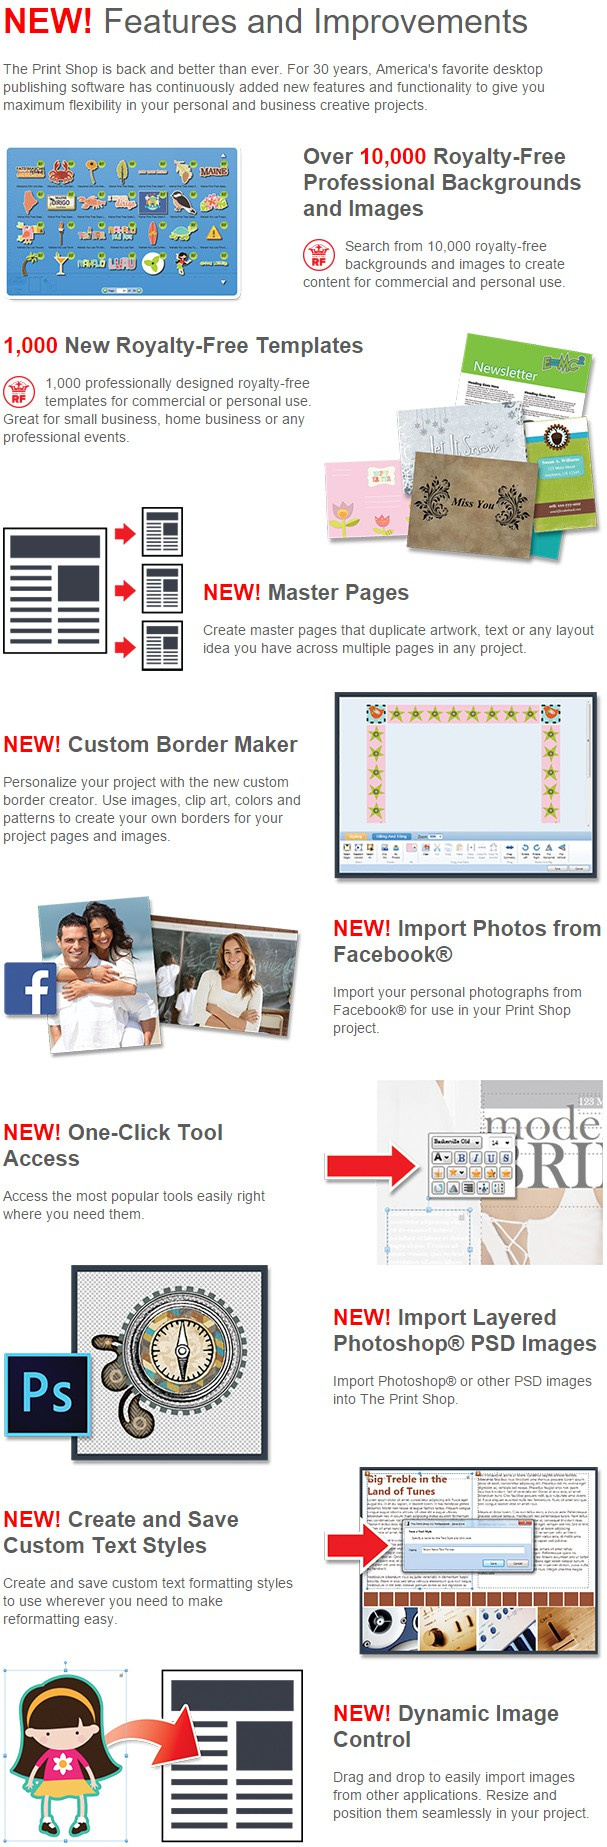 The Print Shop Professional NEW Features and Improvements